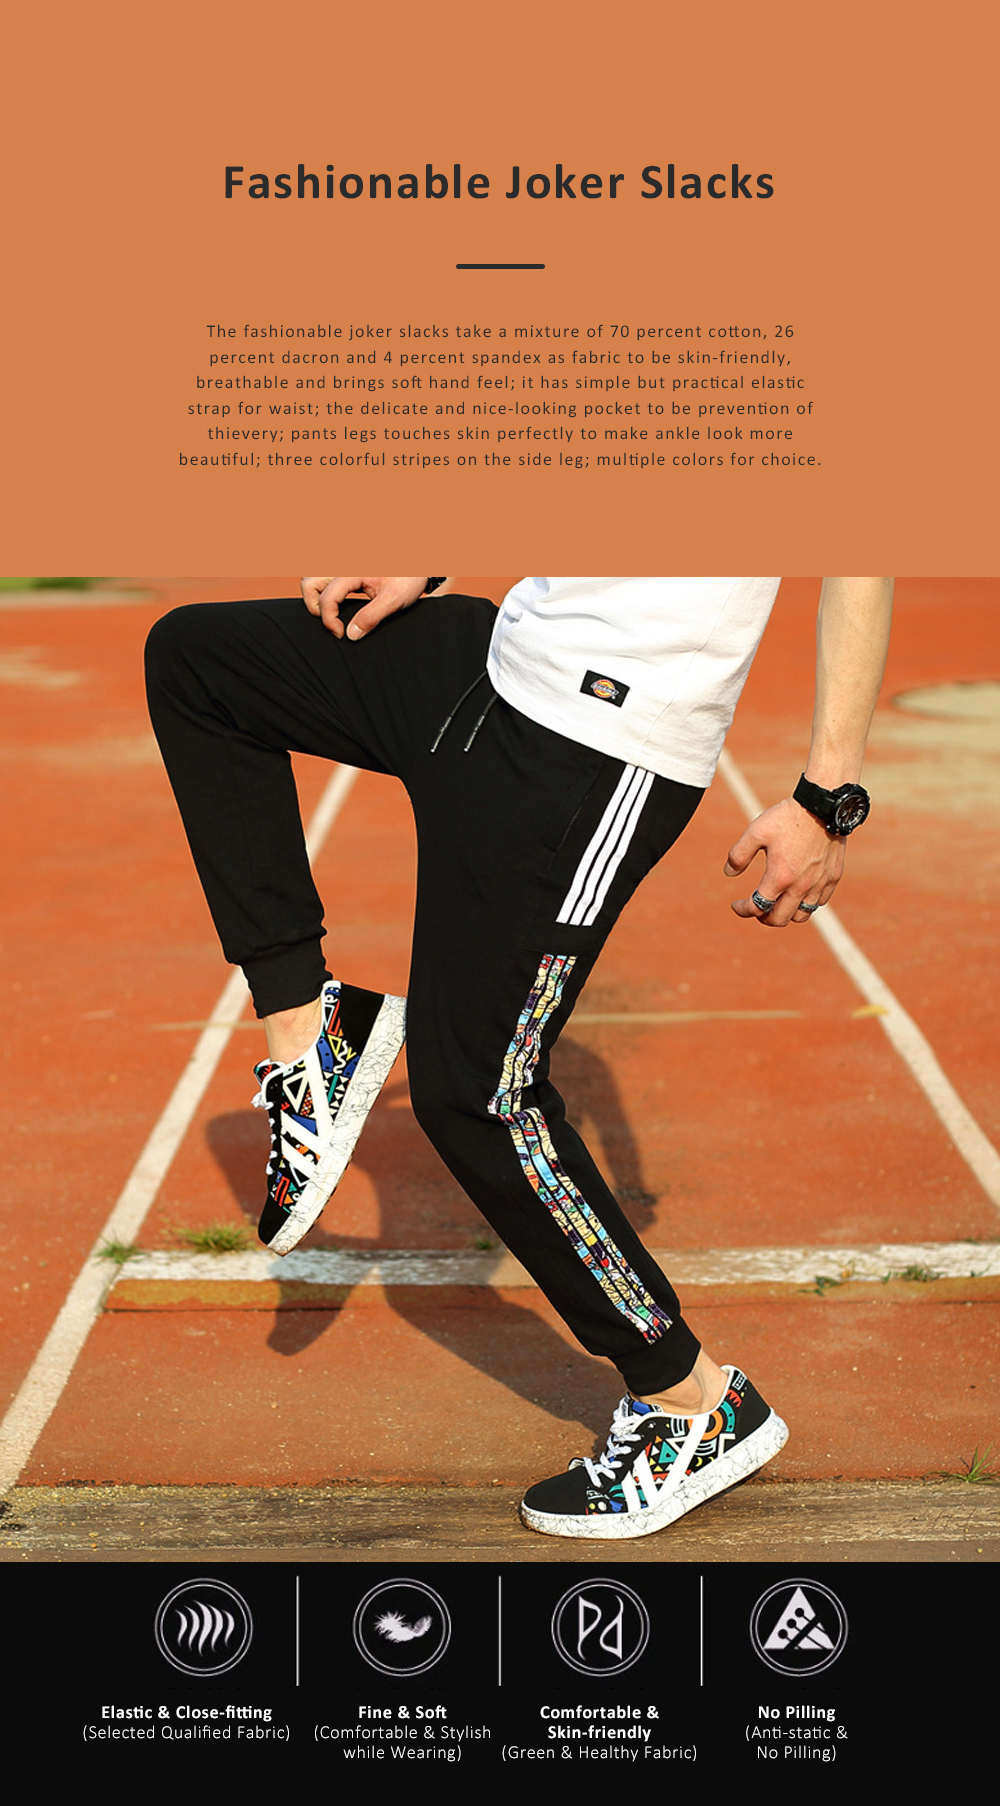 Mid-rise Close-fitting Slim-fit Pants for Male Youth Summer Fashionable Slacks Sports Pants No Belt Pencil Pants Men's Clothing 0